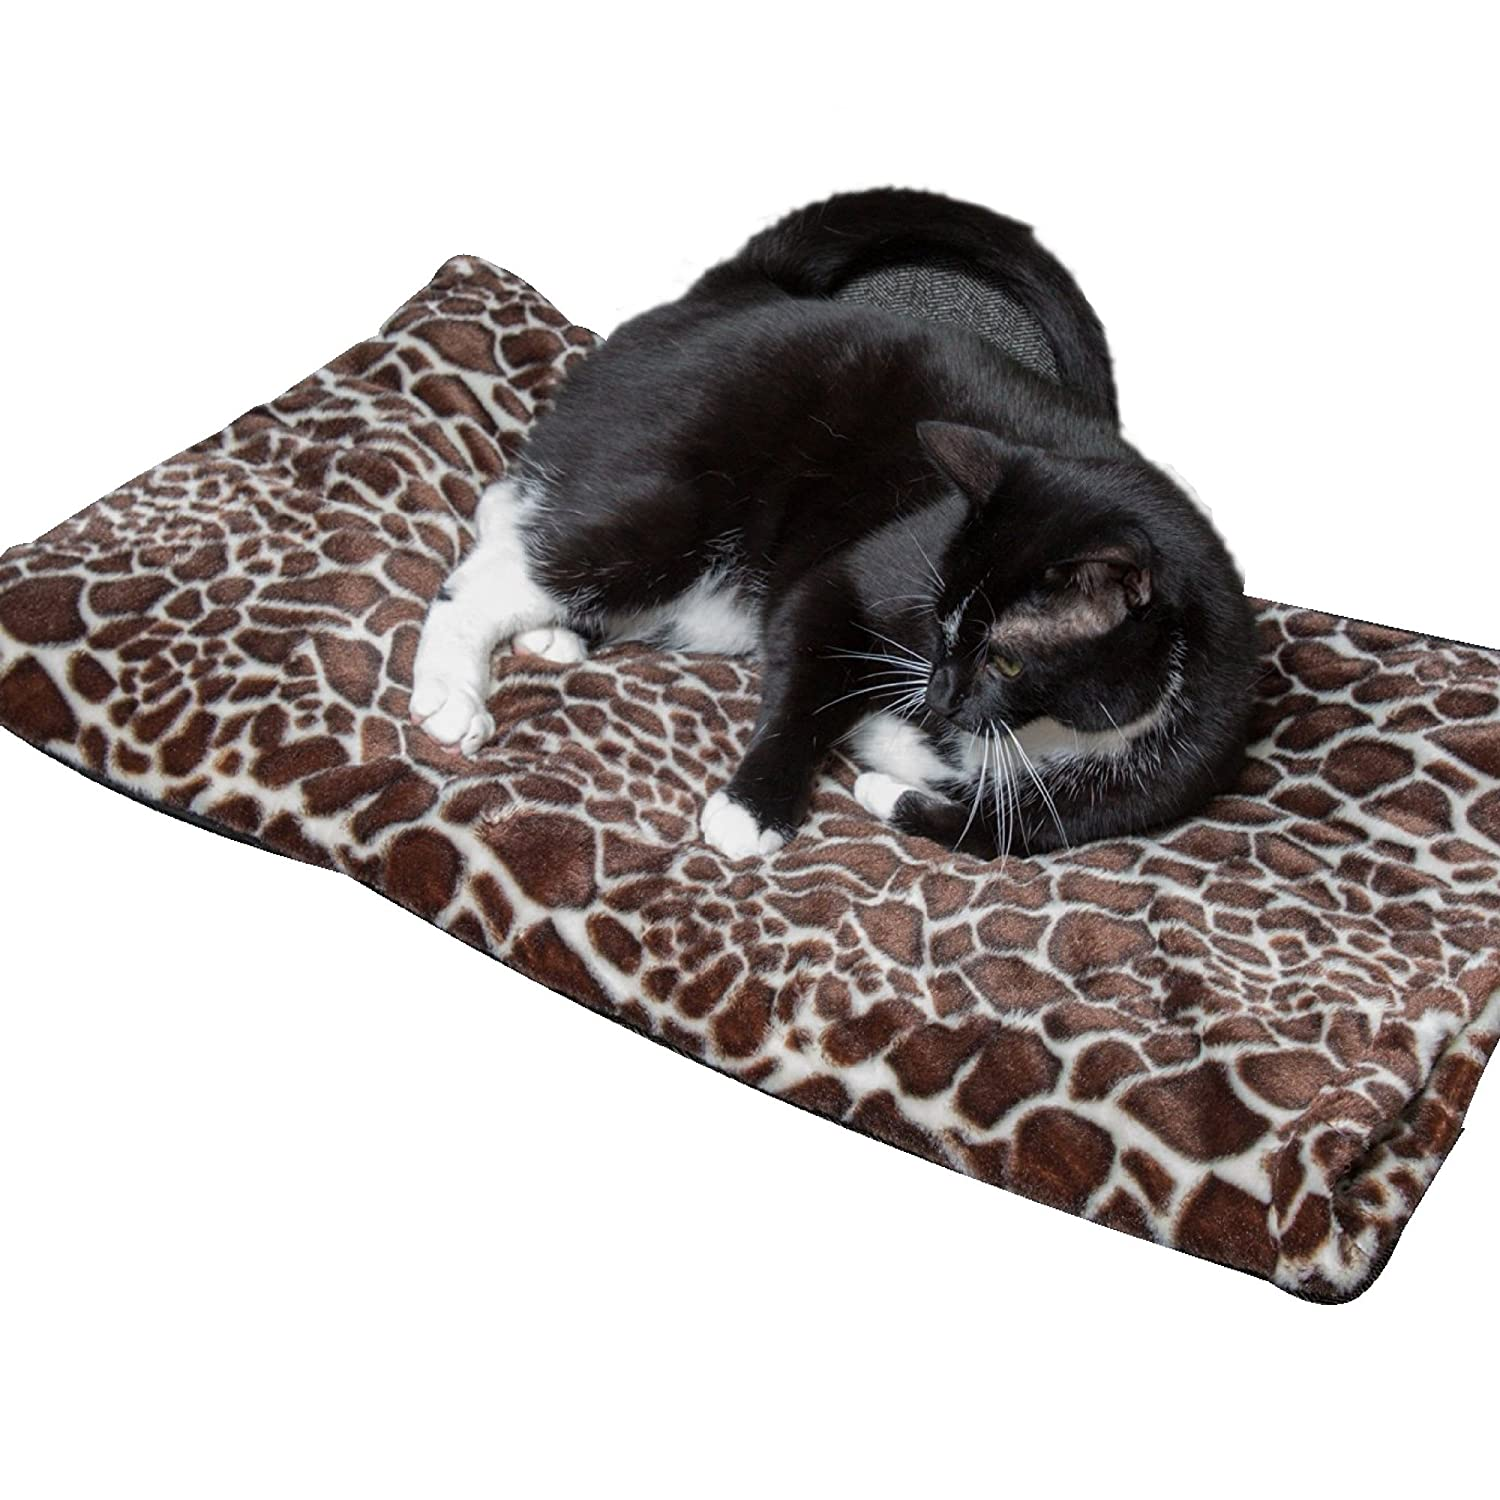 Amazon : Thermal Warming Pad For Dogs And Cats  Xl Couch Protecting  Pet Bed Machine Washable : Pet Supplies